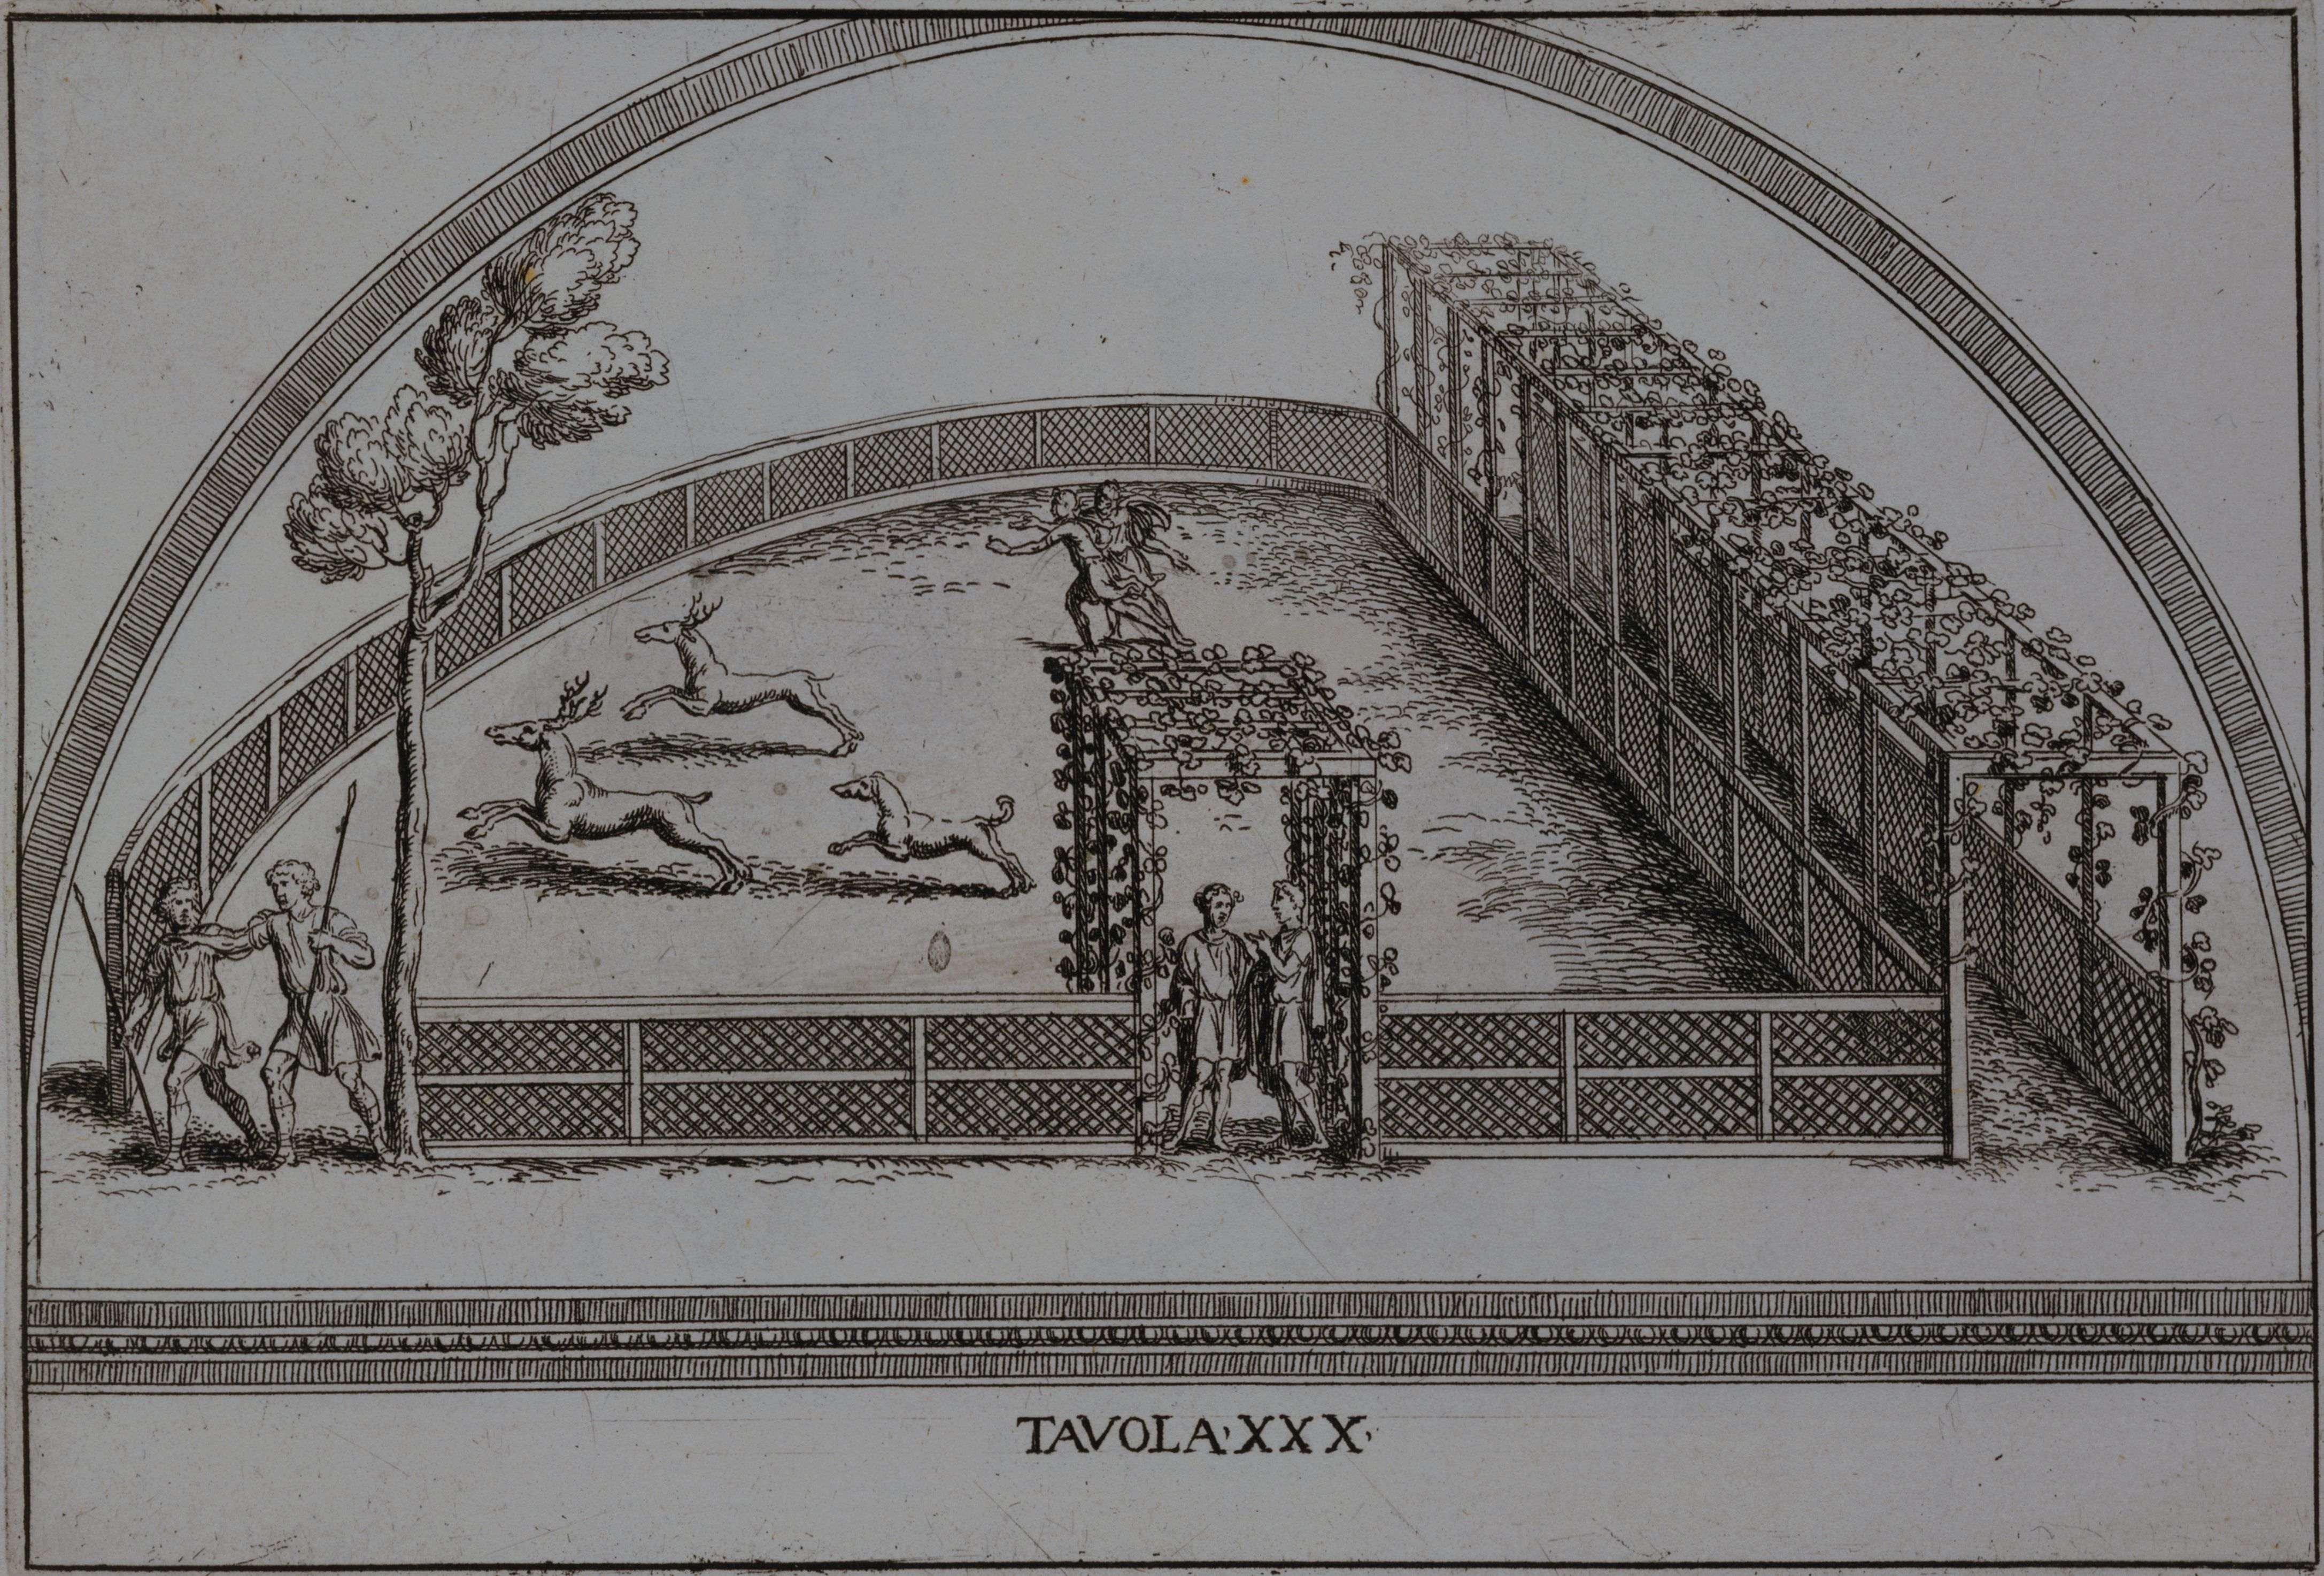 Illustration of an Enclosure for Stag Hunting